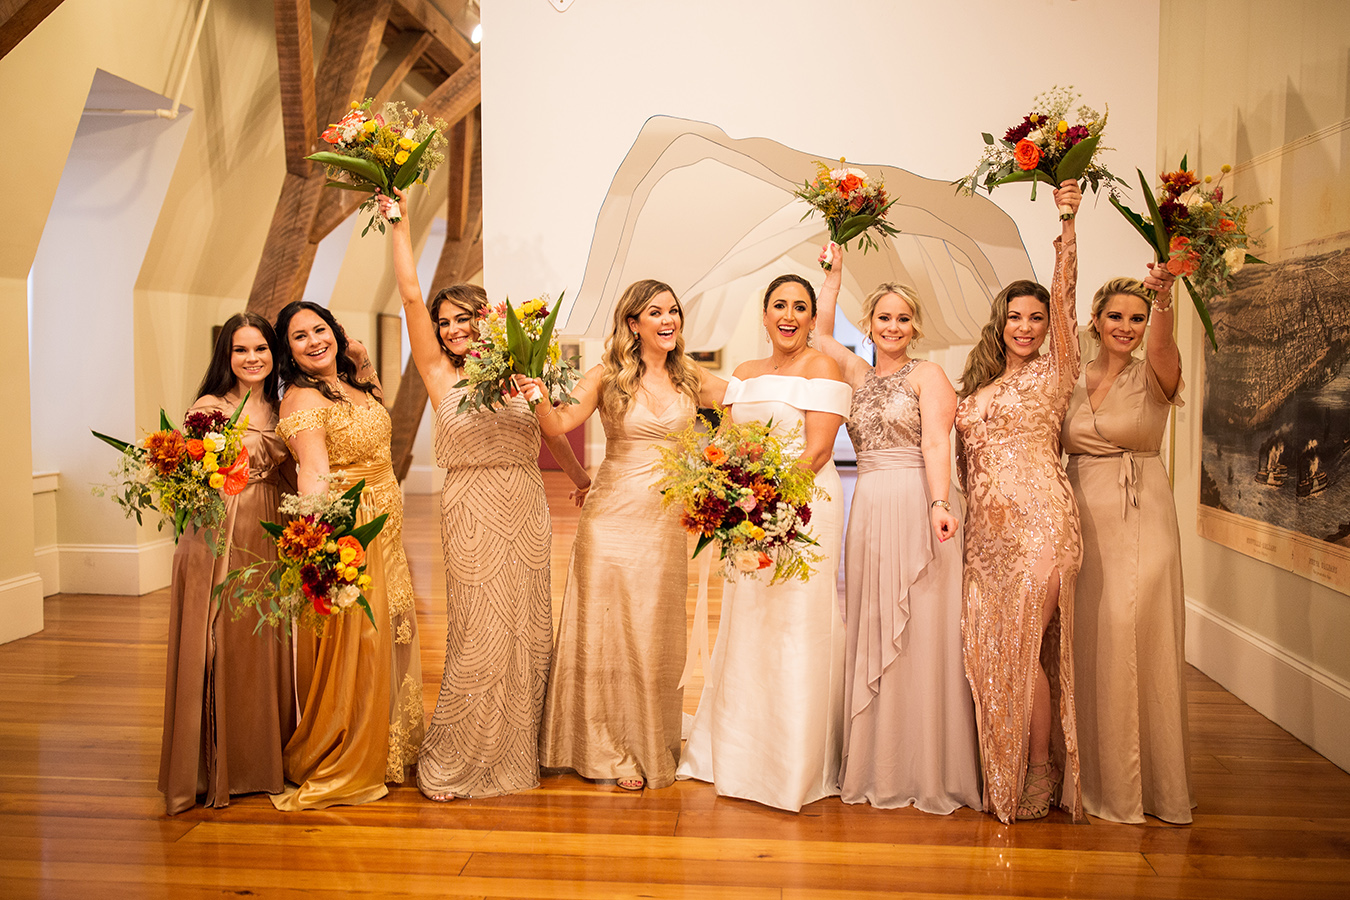 Susan's bridesmaids each wore a different style dress within a warm golden and blush color palette.